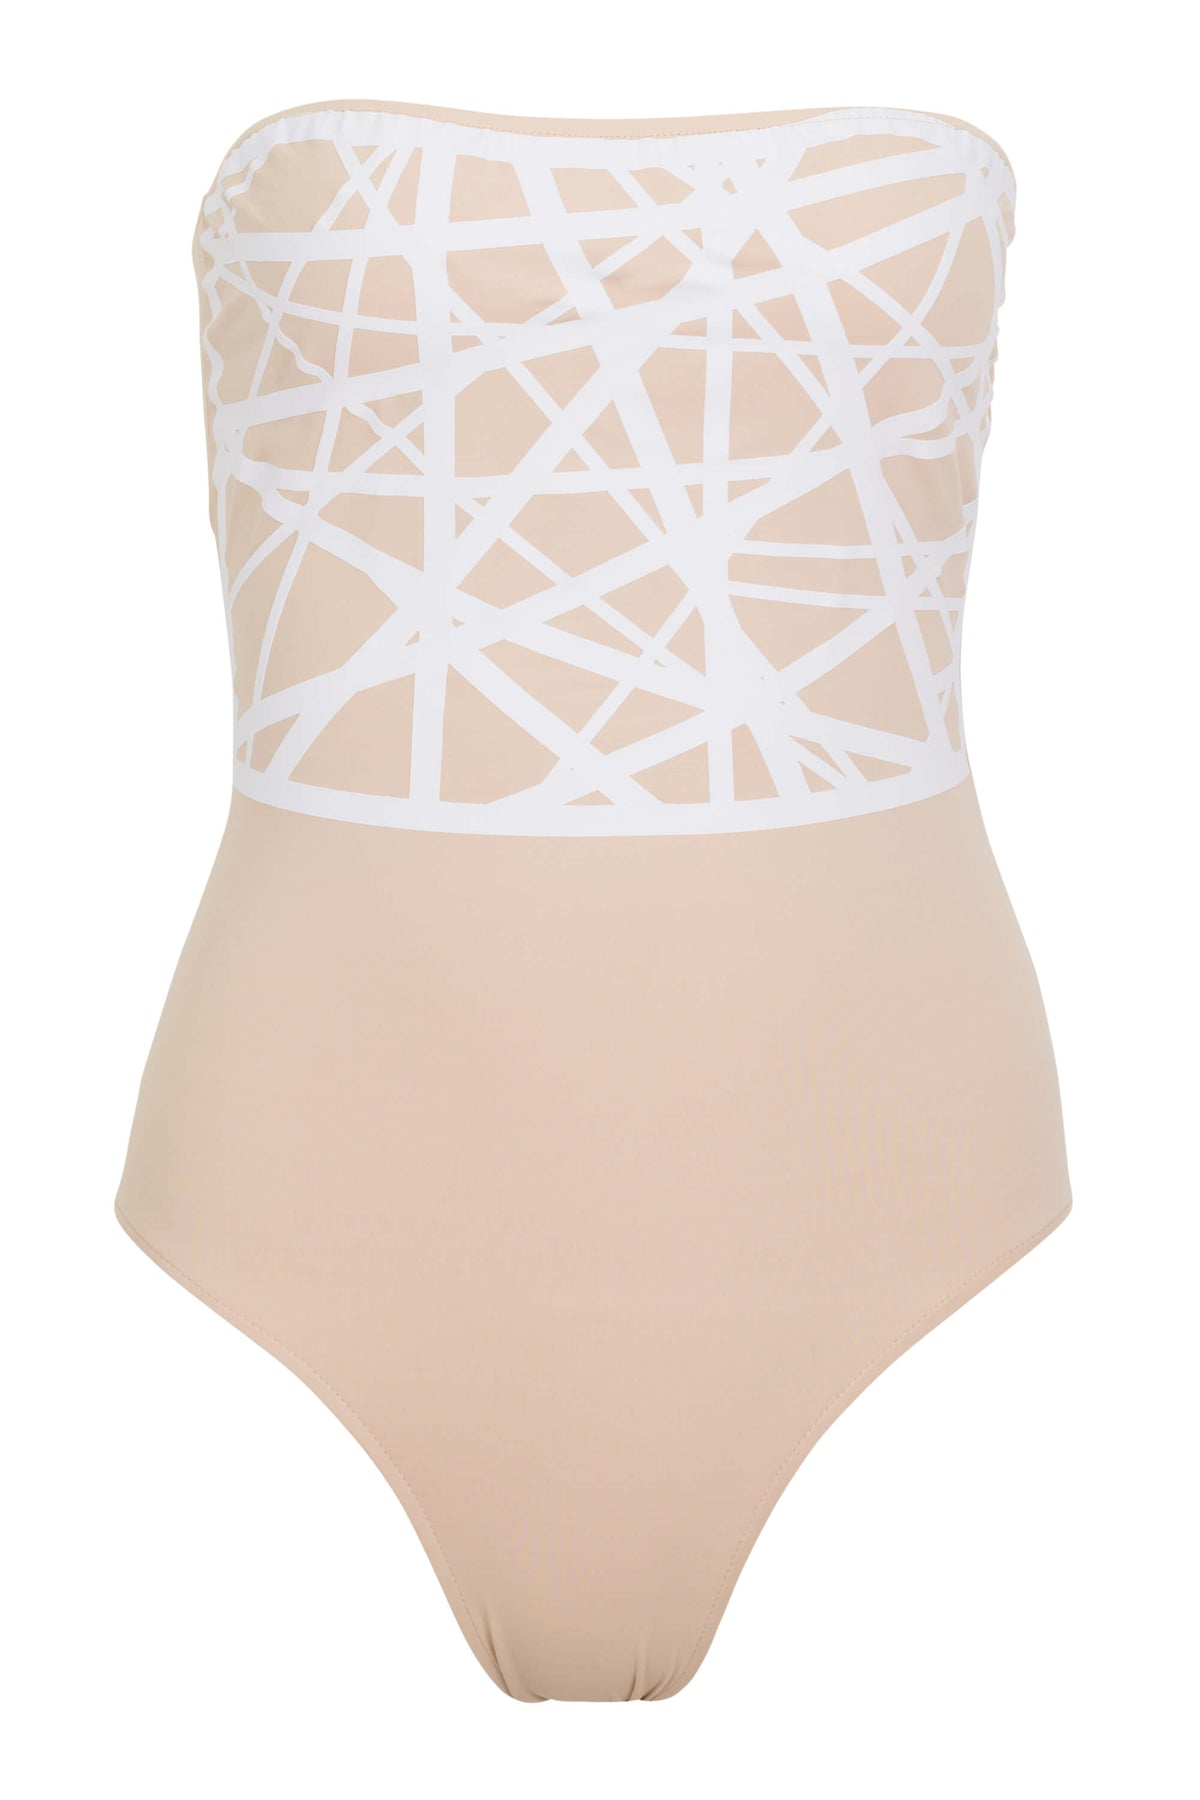 Angela one piece swimsuit in camel with white laser details.